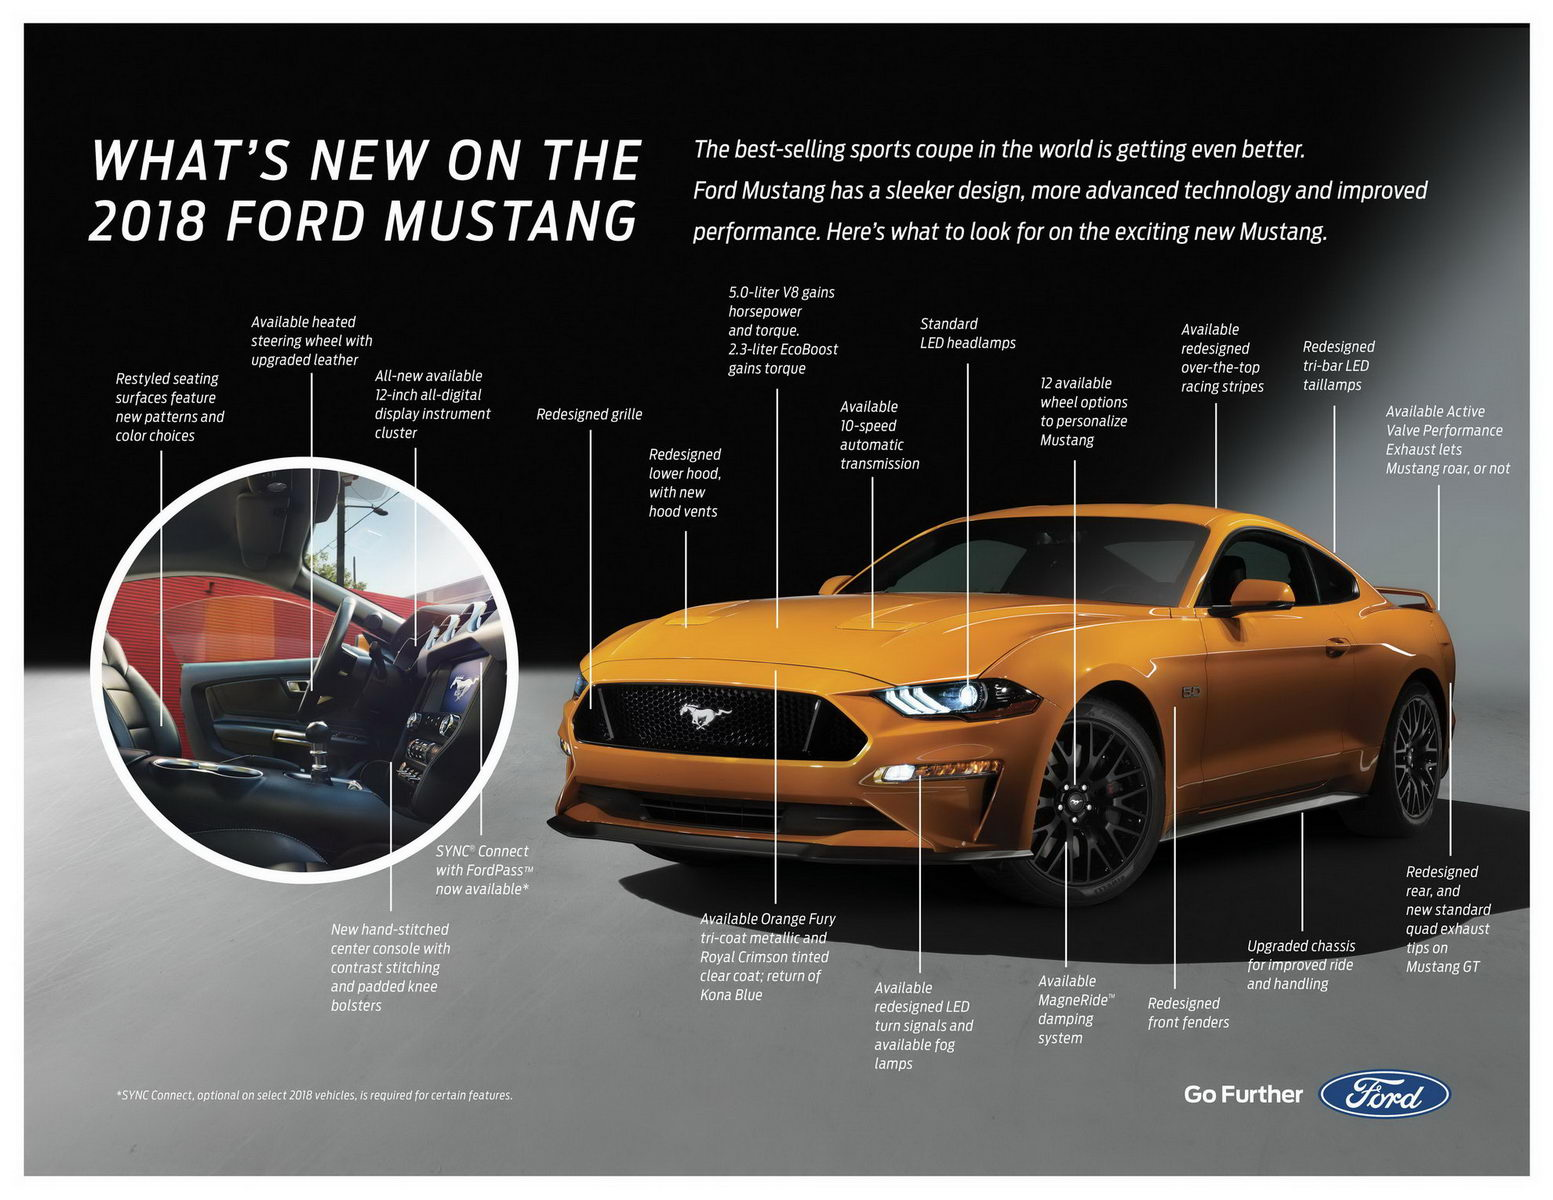 Ford Mustang GT facelift 2018 2